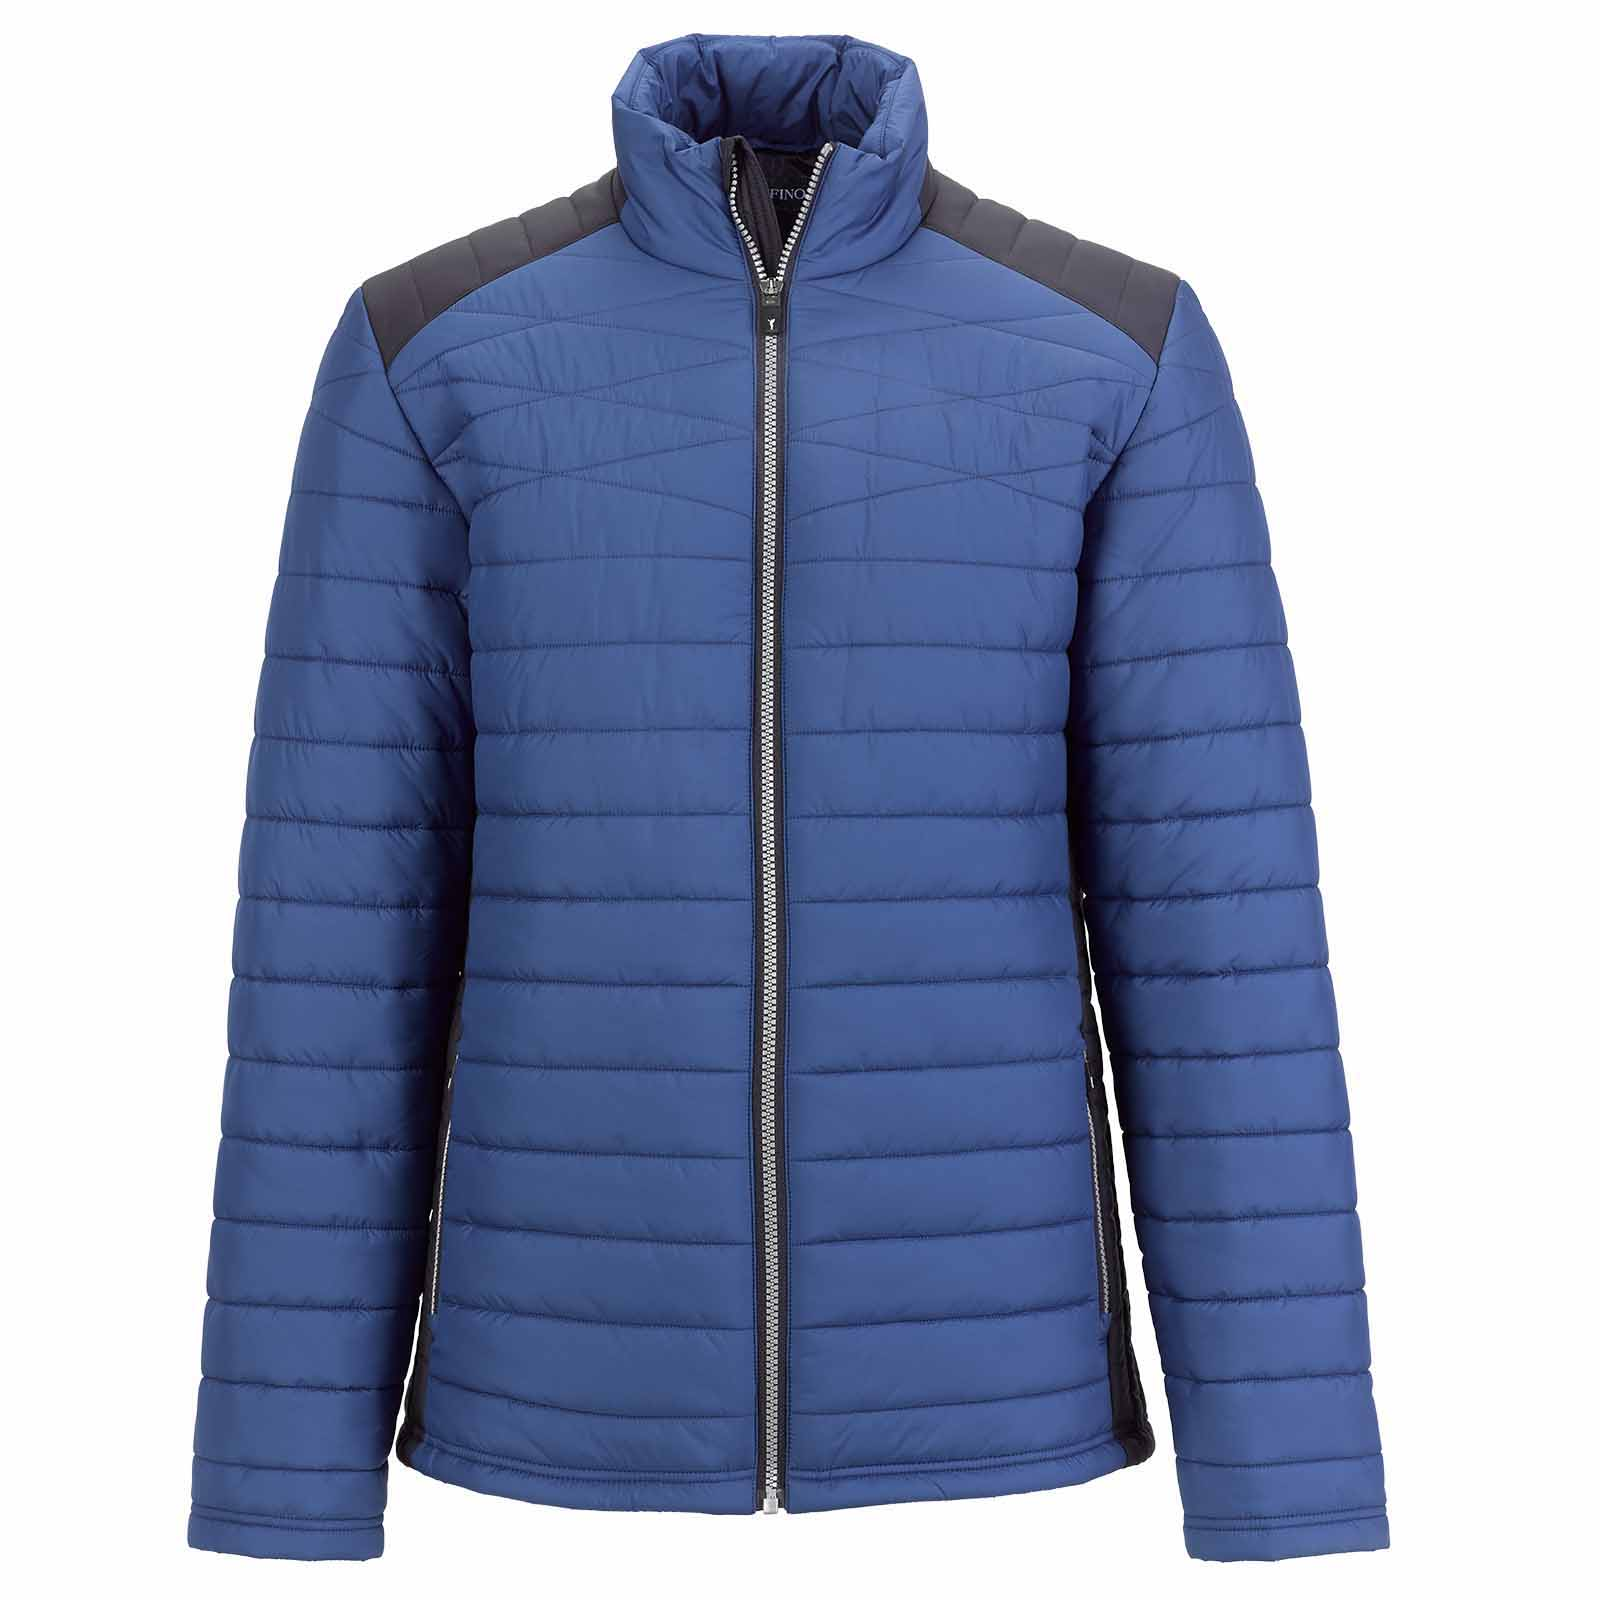 Men's golf jacket with Cold Protection function and excellent insulation